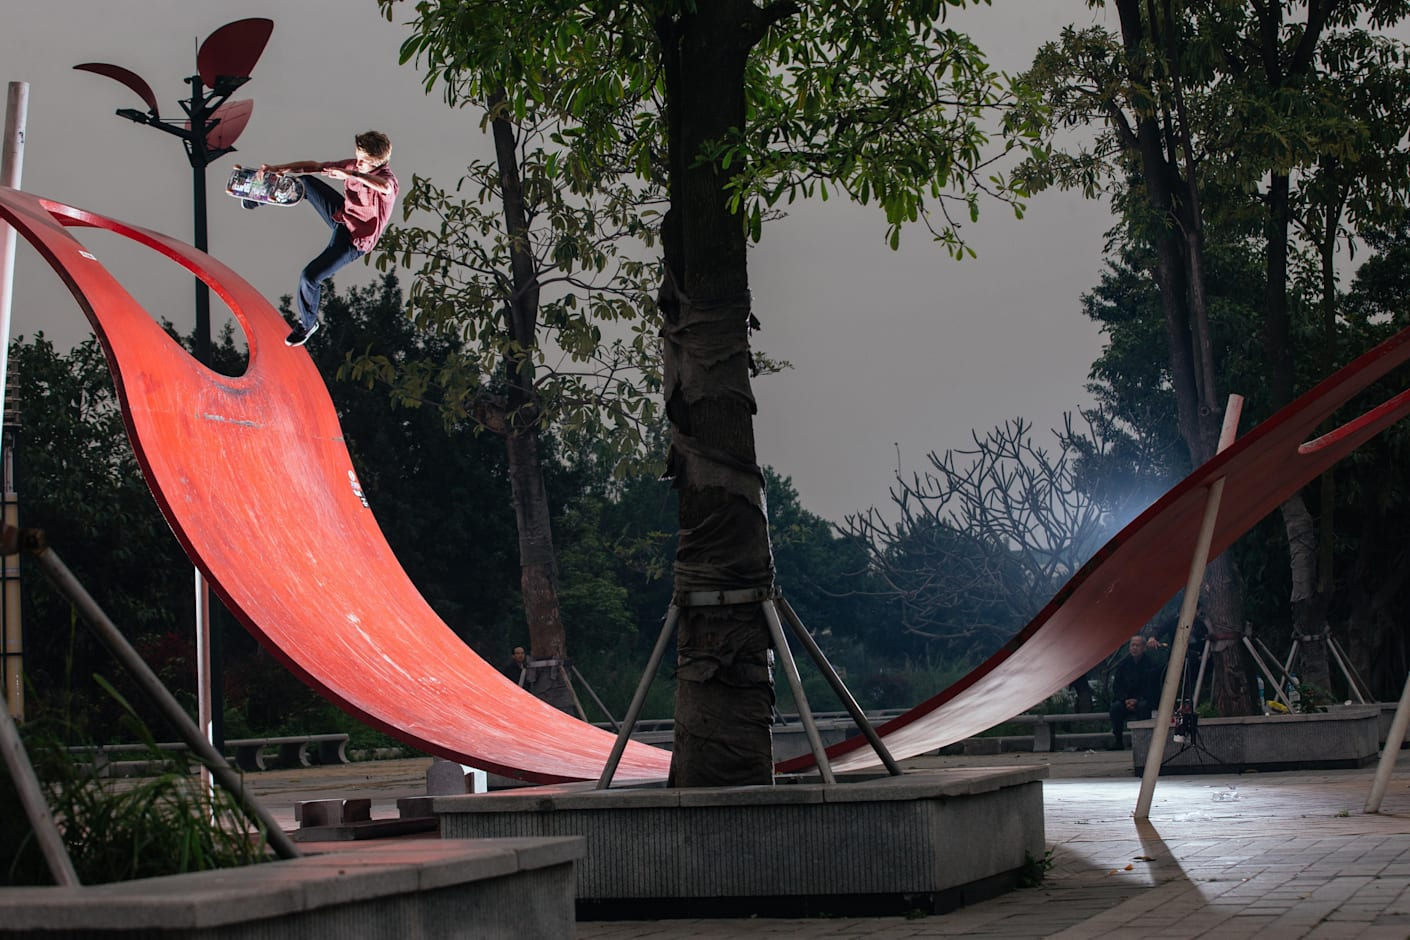 China and a passion for skateboarding